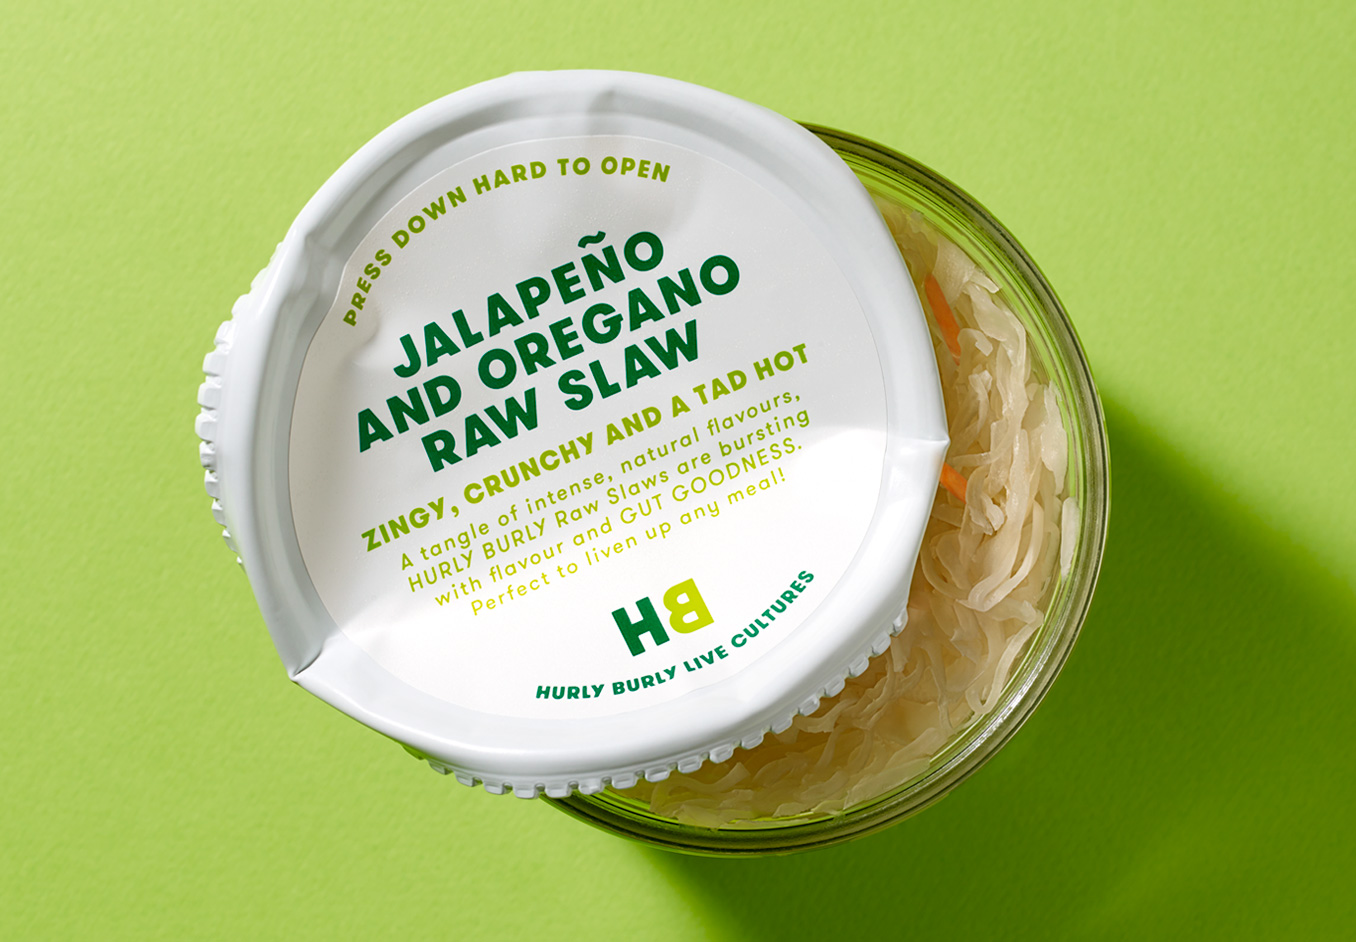 Logotype, packaging and print by London-based Midday Studio for Hurly Burly and its range of raw slaw